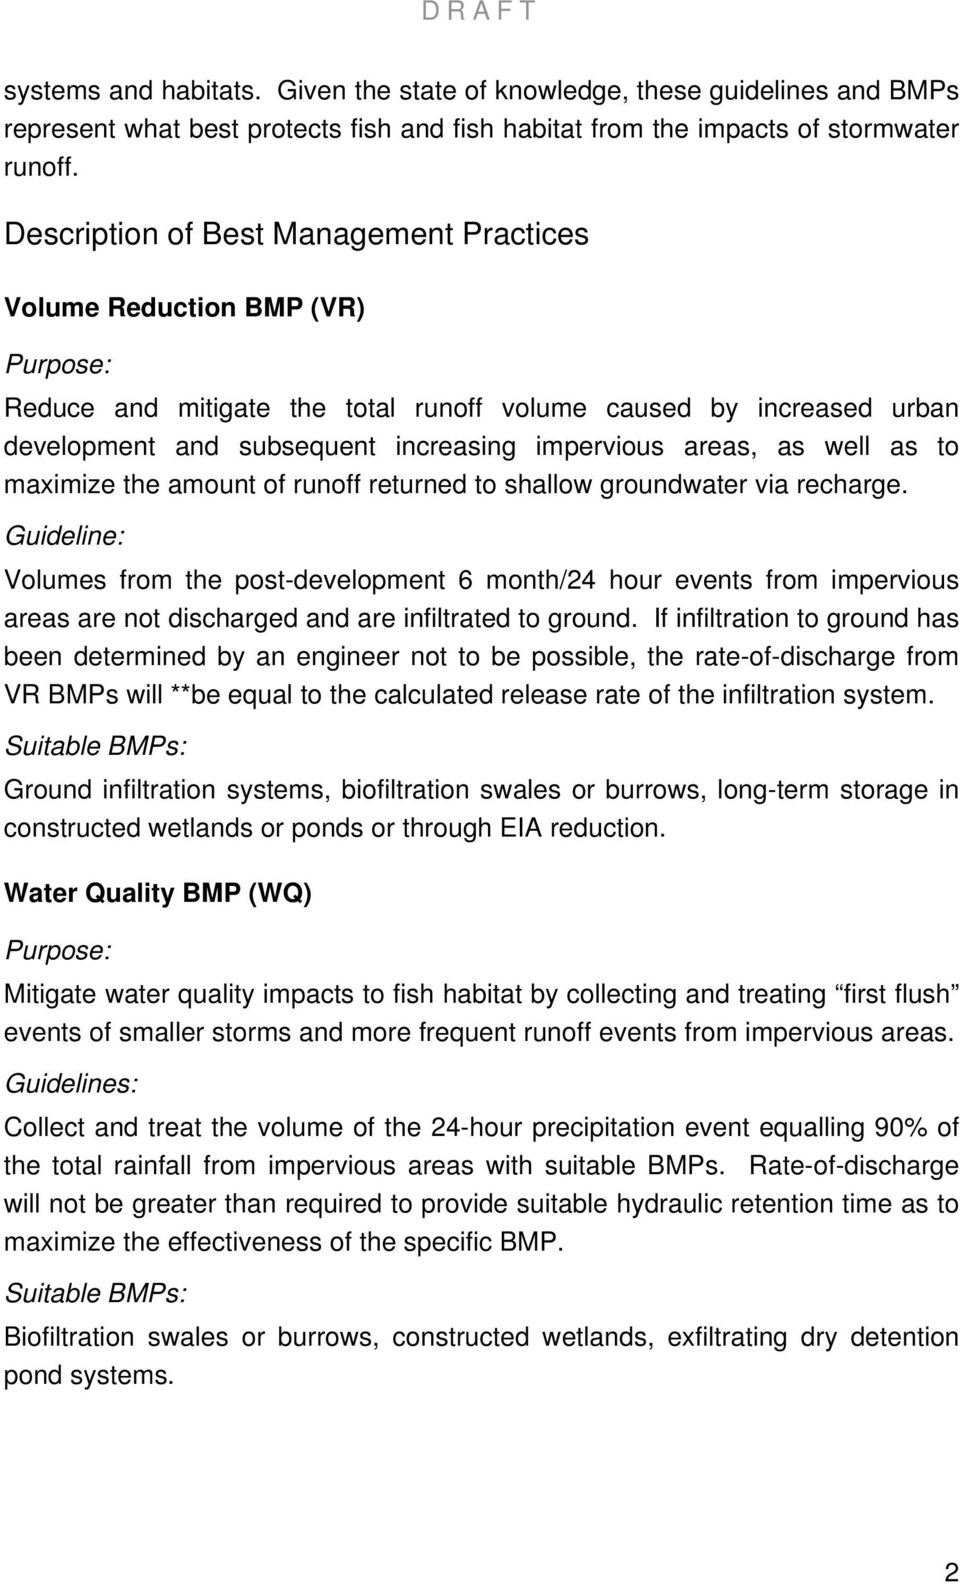 areas, as well as to maximize the amount of runoff returned to shallow groundwater via recharge.